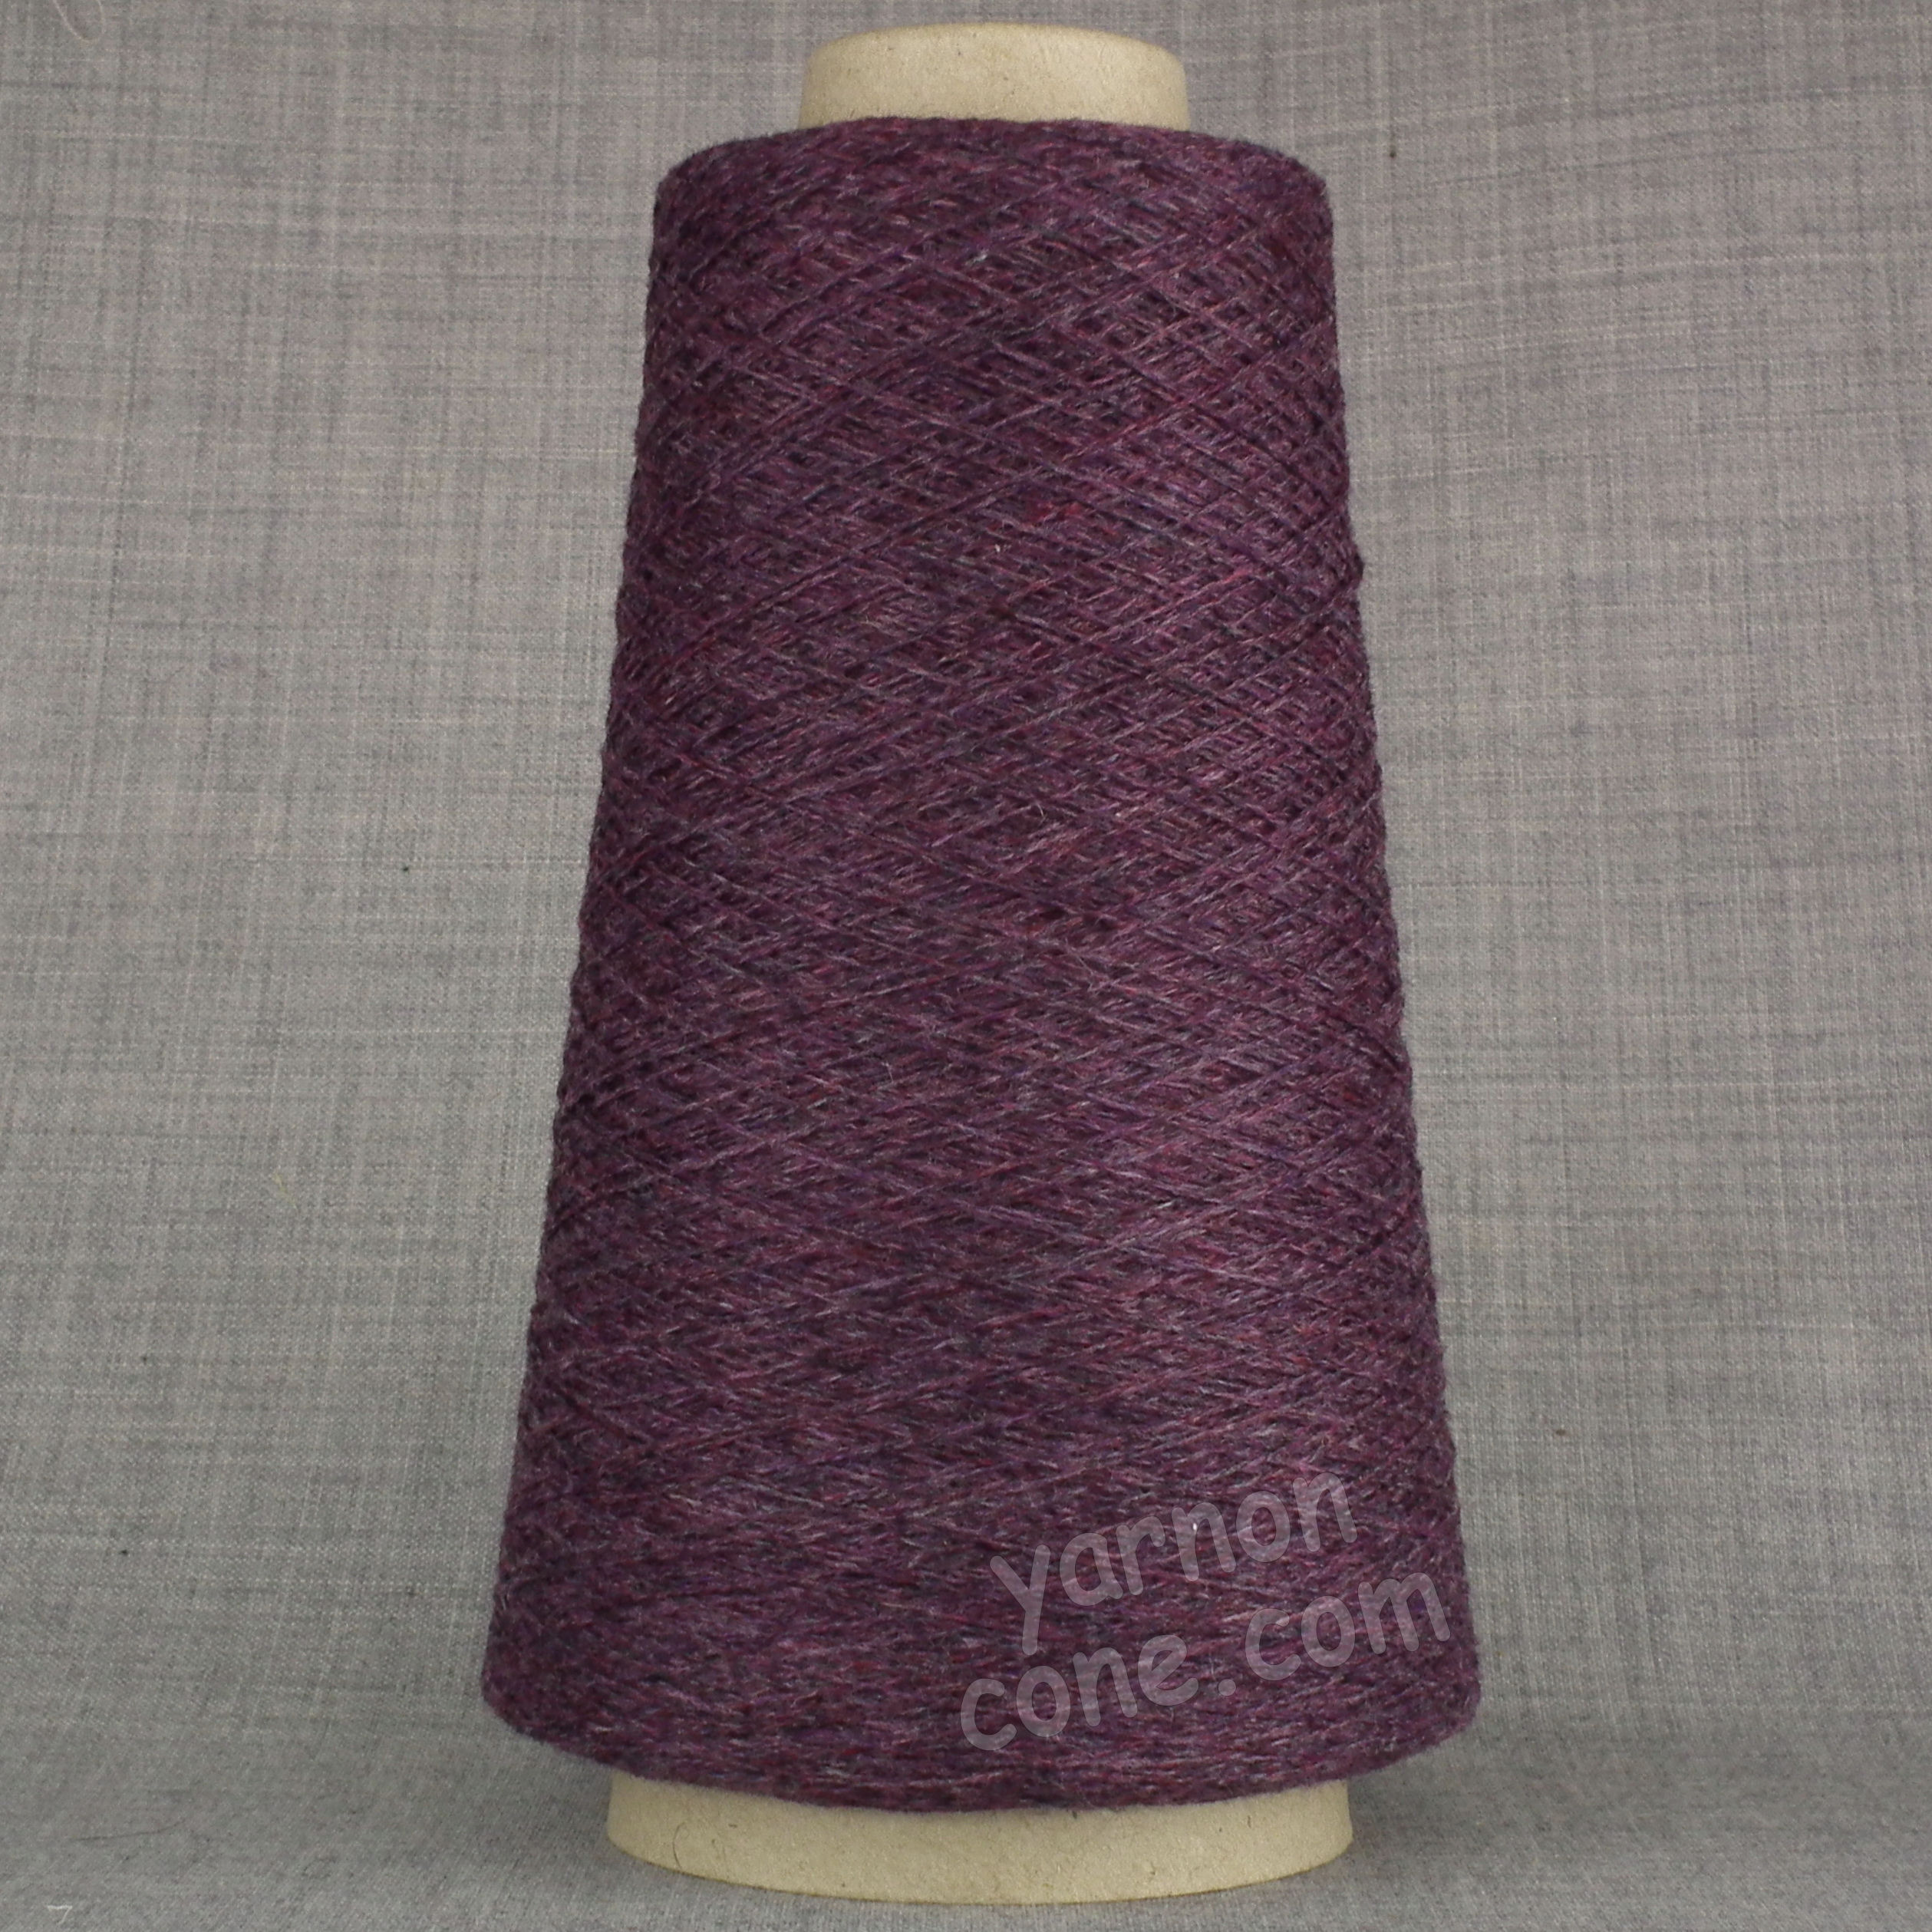 100% pure cashmere yarn on cone purple melange heather hand machine knitting